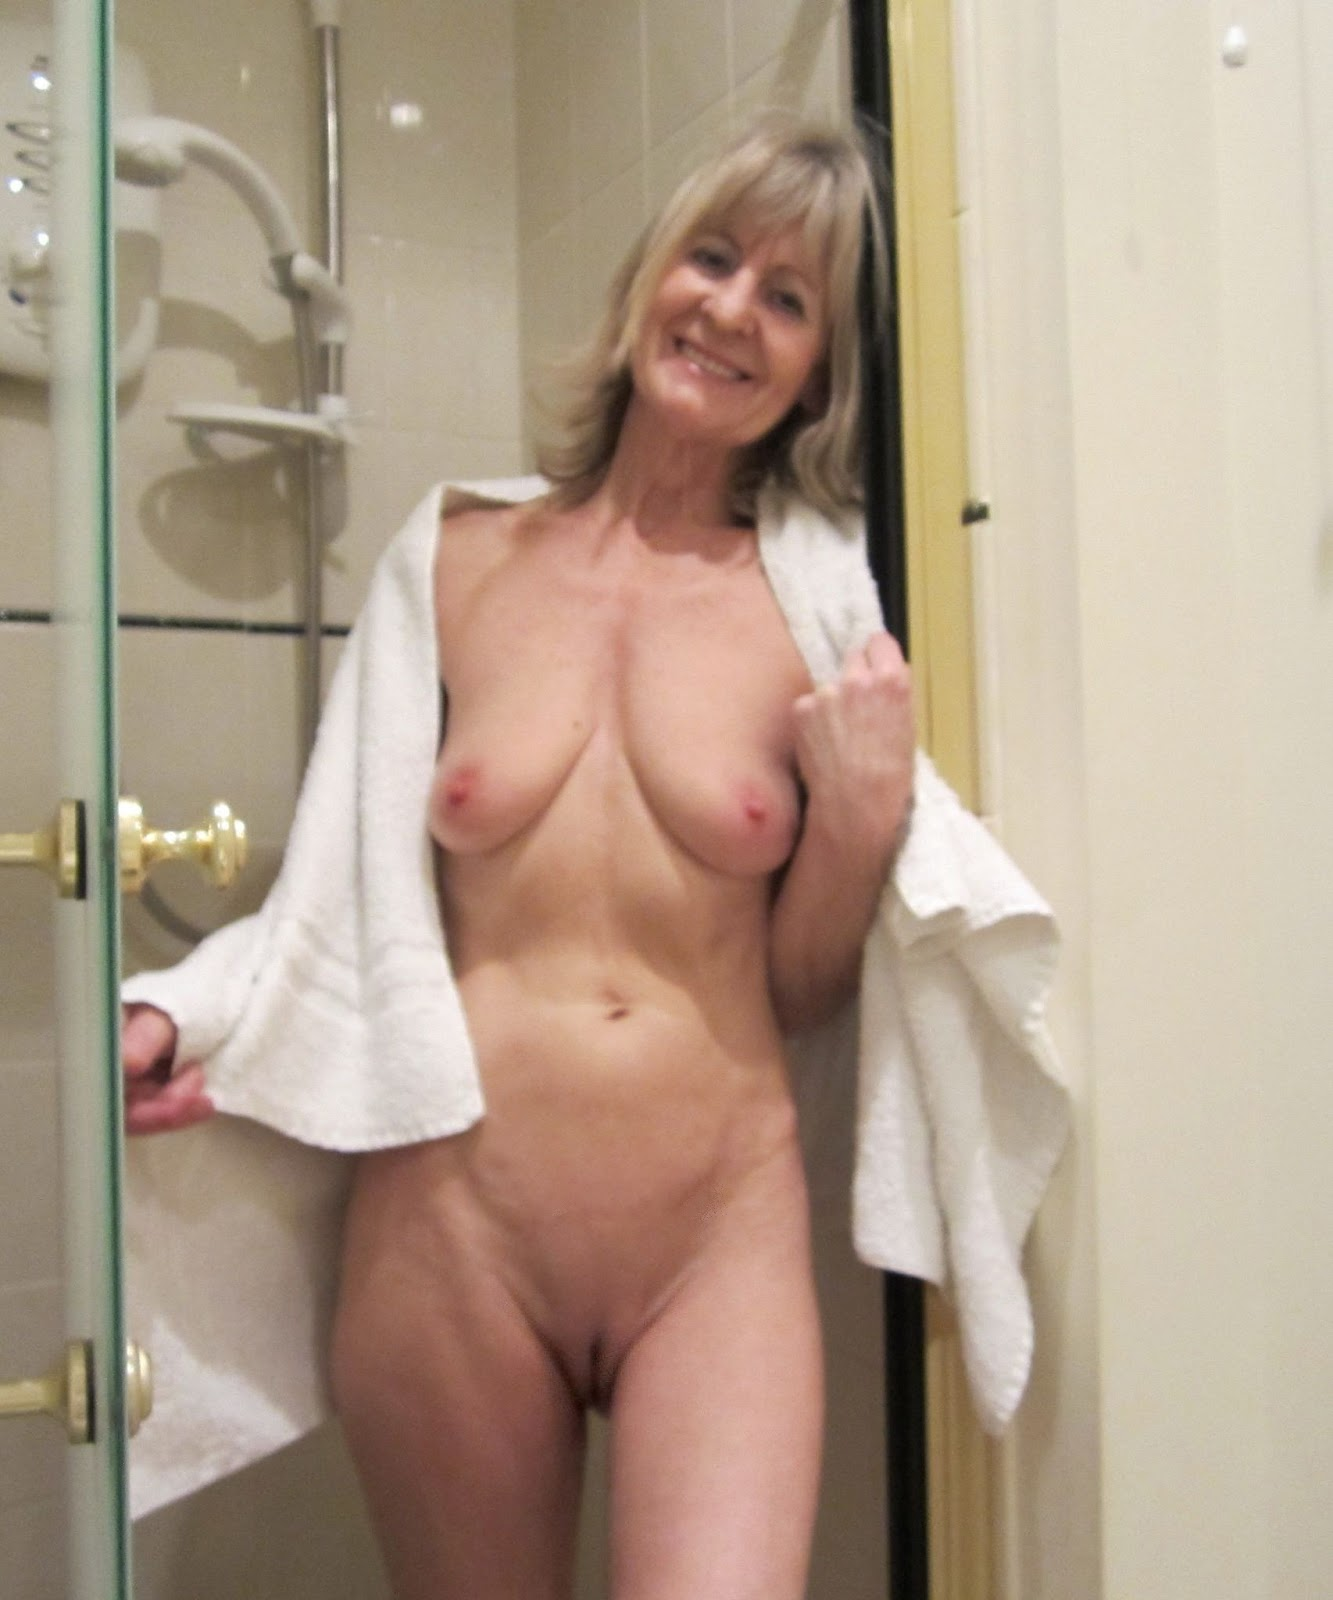 Right! busty gilf nude pussy